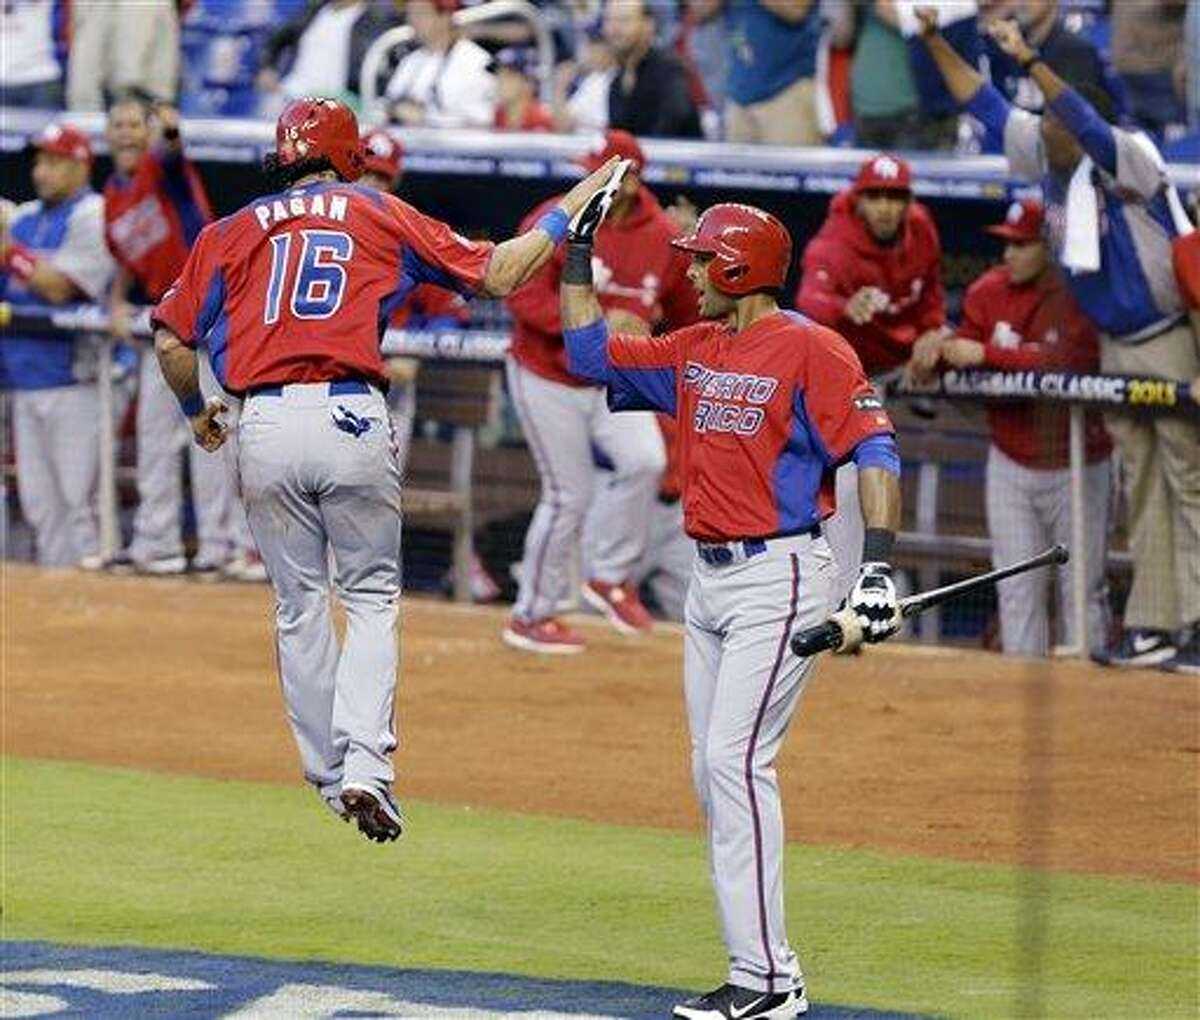 Puerto Rico's Angel Pagan (16) celebrates with on-deck batter Alex Rios after scoring on a single by Mike Aviles during the first inning of the second-round elimination game of the World Baseball Classic against the United States, Friday, March 15, 2013, in Miami. (AP Photo/Wilfredo Lee)